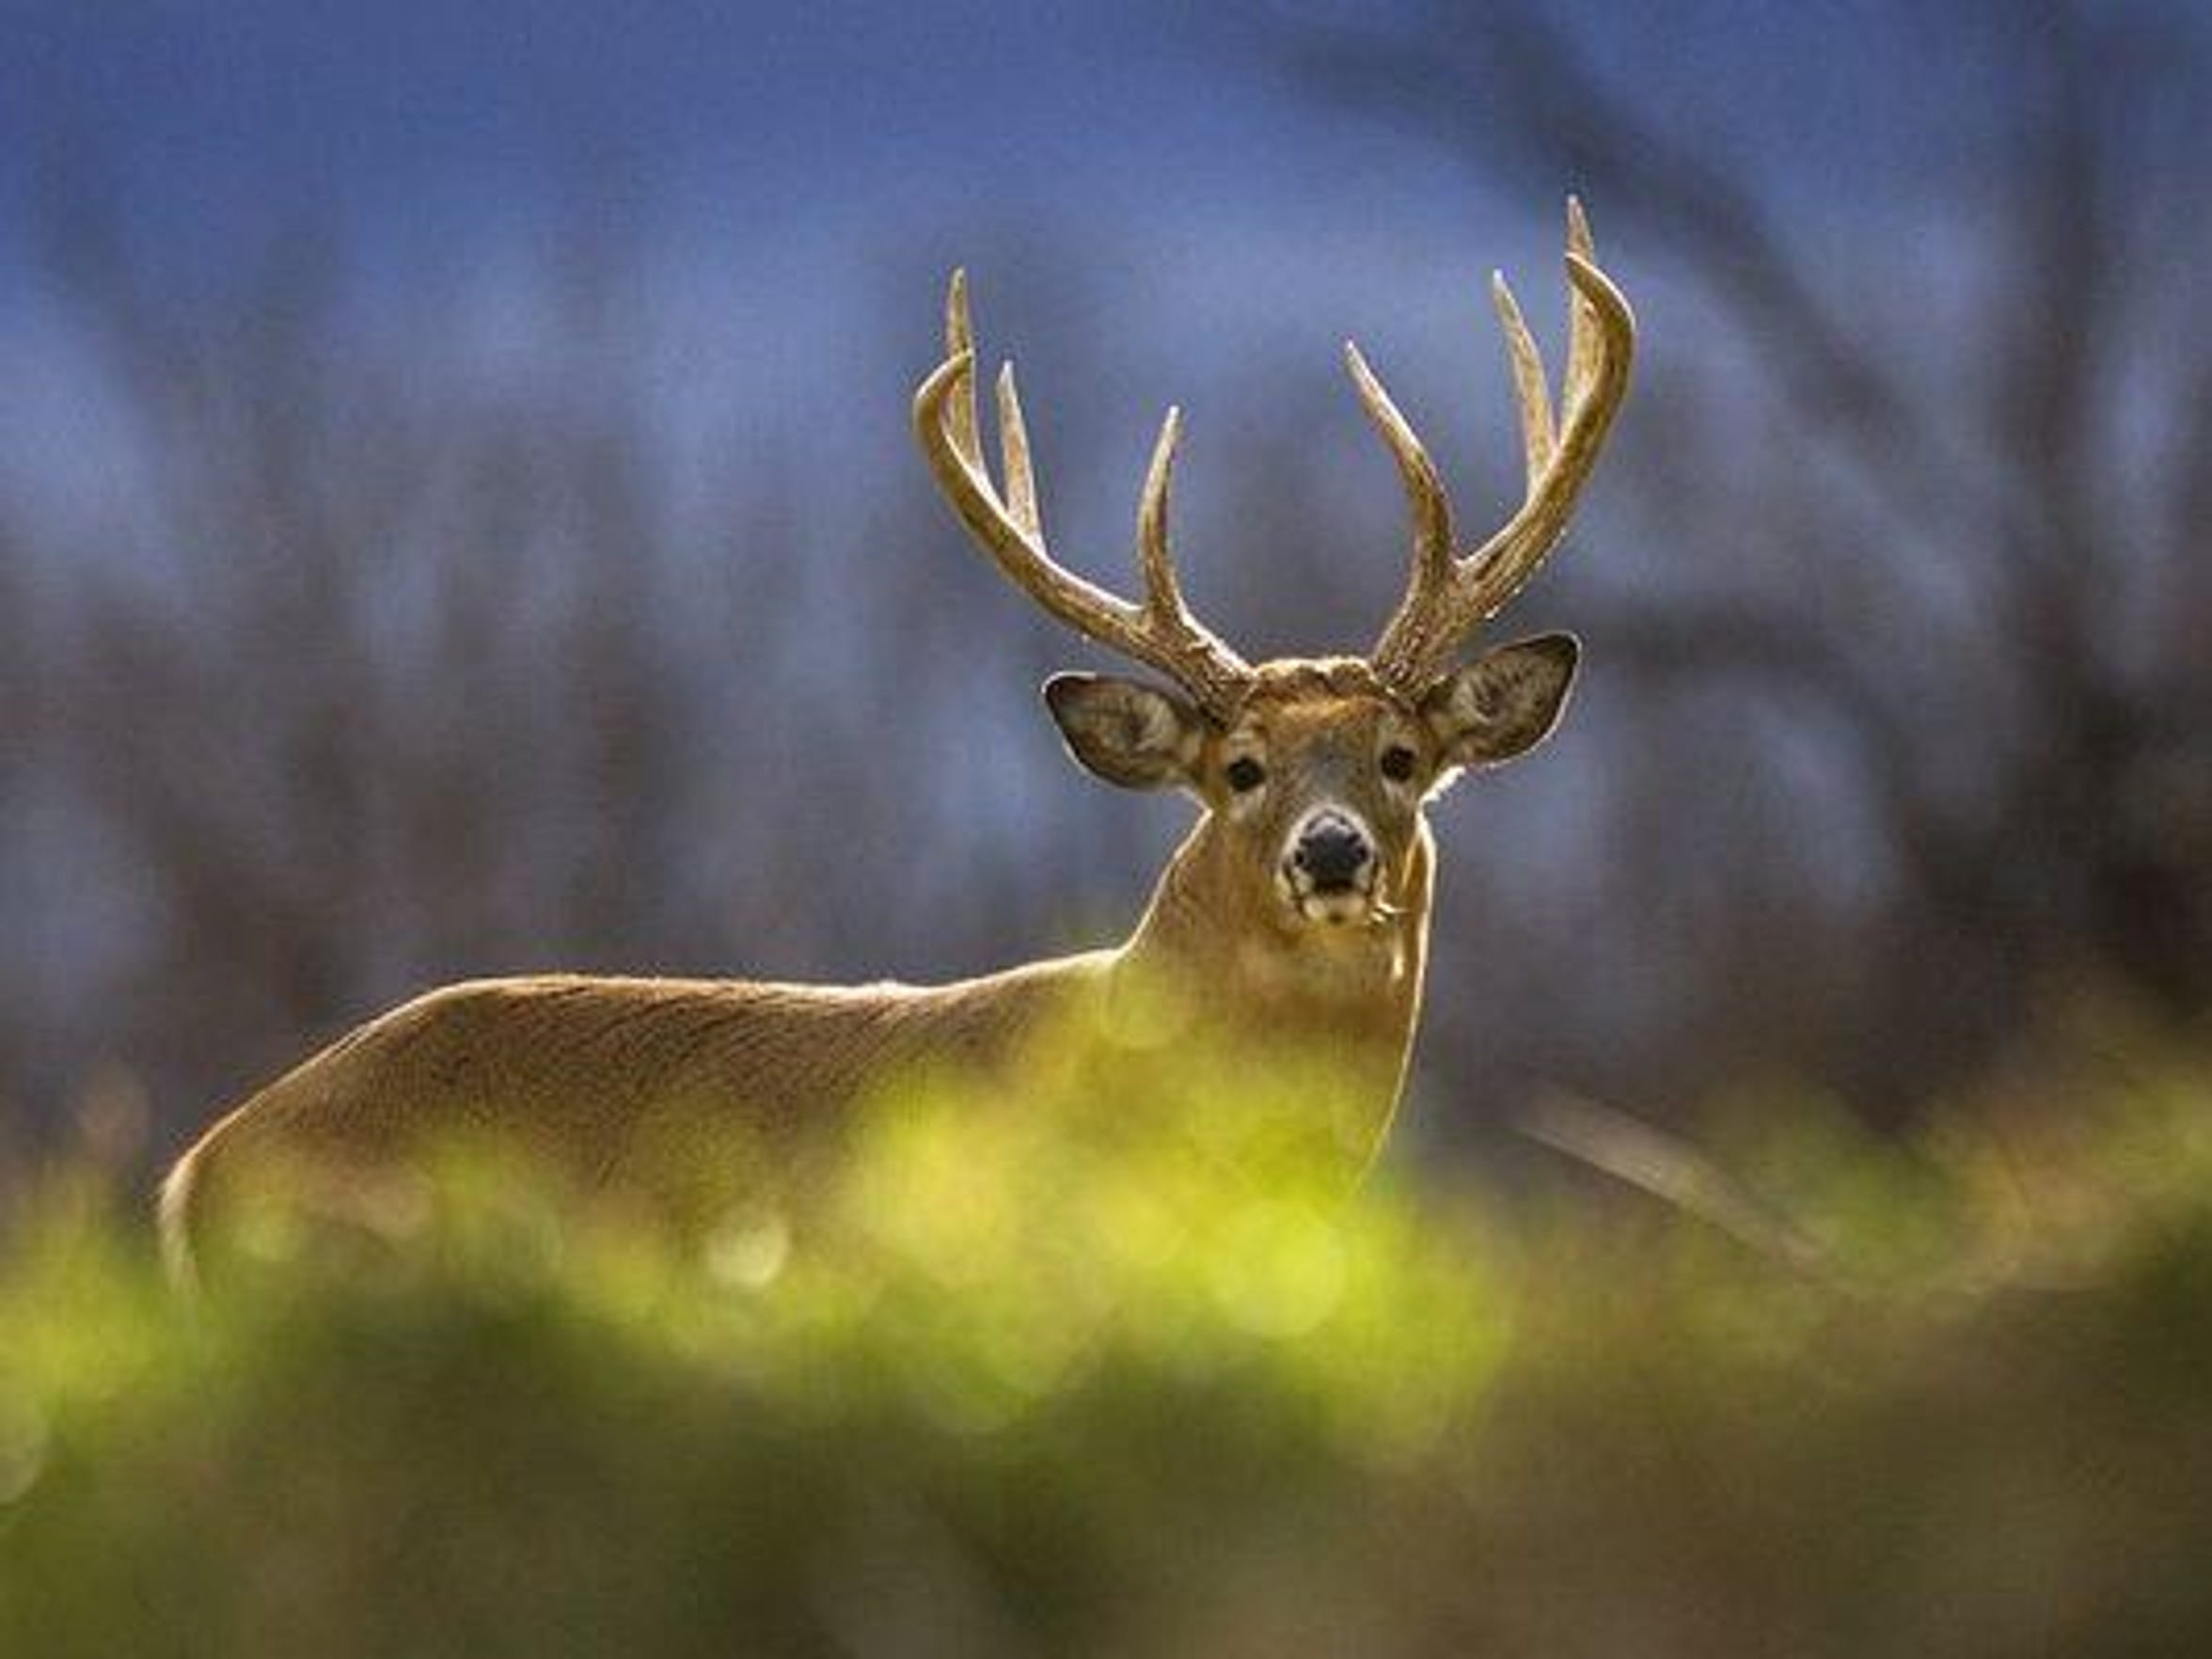 Bow hunters will be looking for big bucks with the opening of archery season on Monday in Michigan.